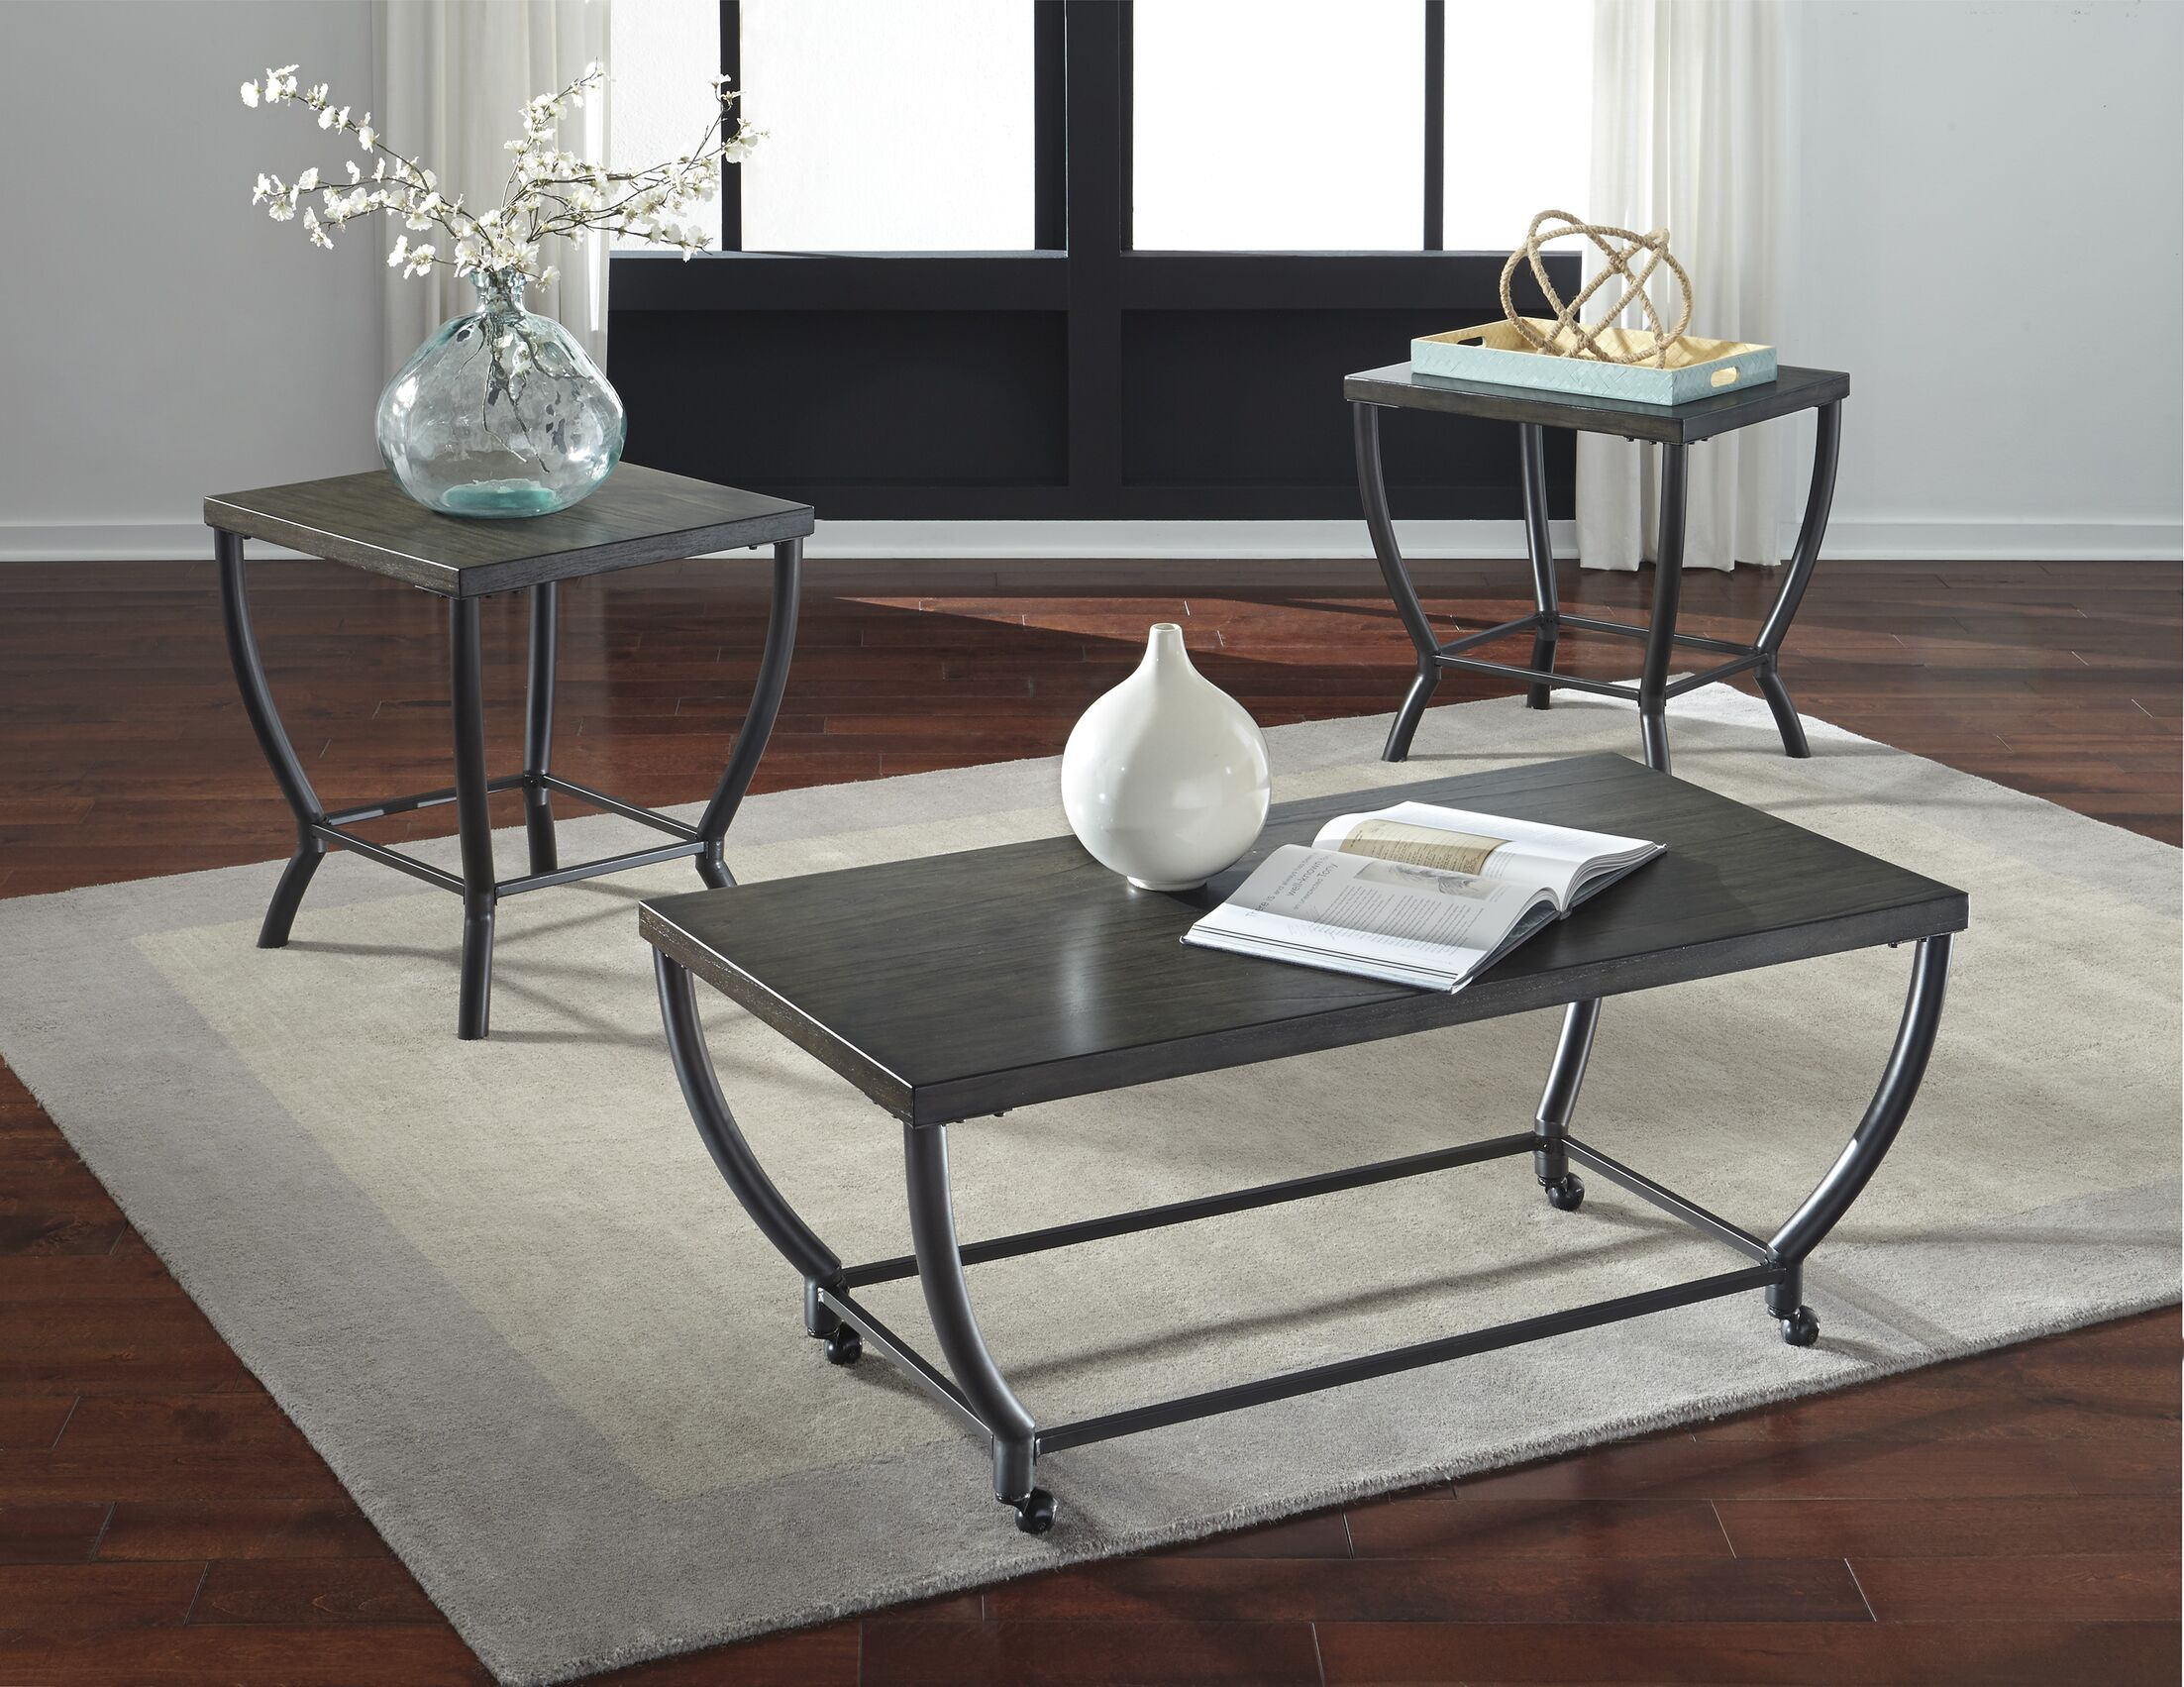 Isik 3 Piece Coffee Table Set